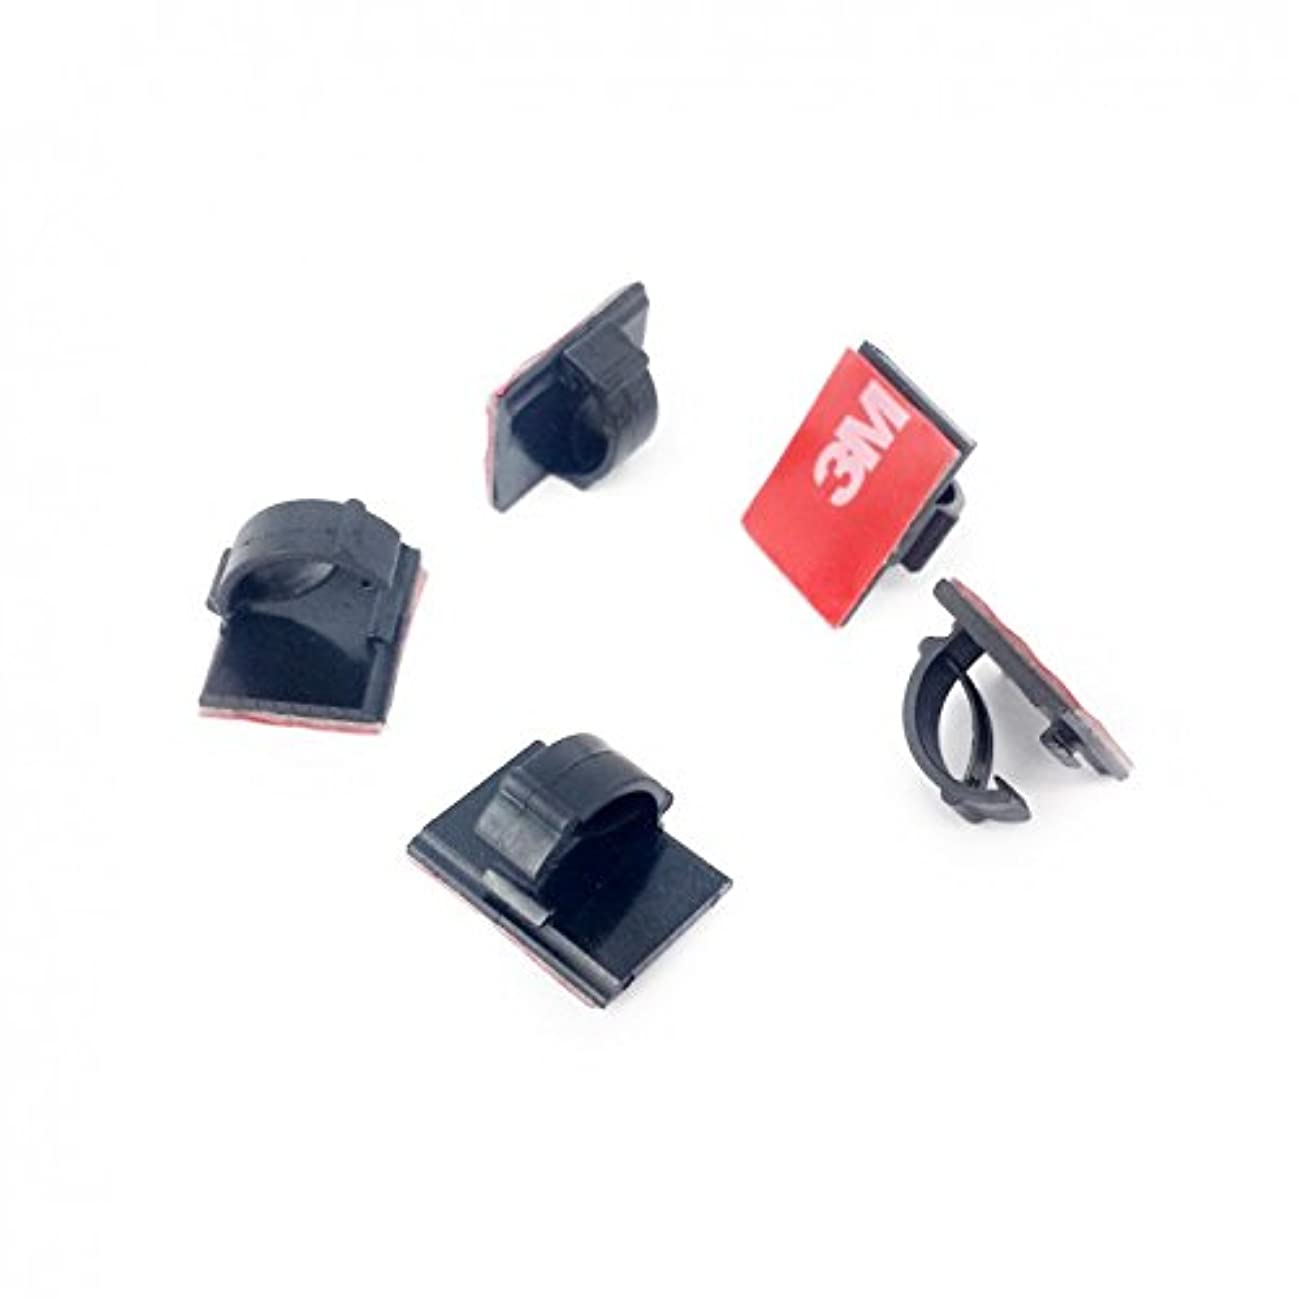 3M CORDCLIPS 5 Black (Dark 3M VHB) Cord Clips to Secure Wires from Your DASHCAM or Other Devices